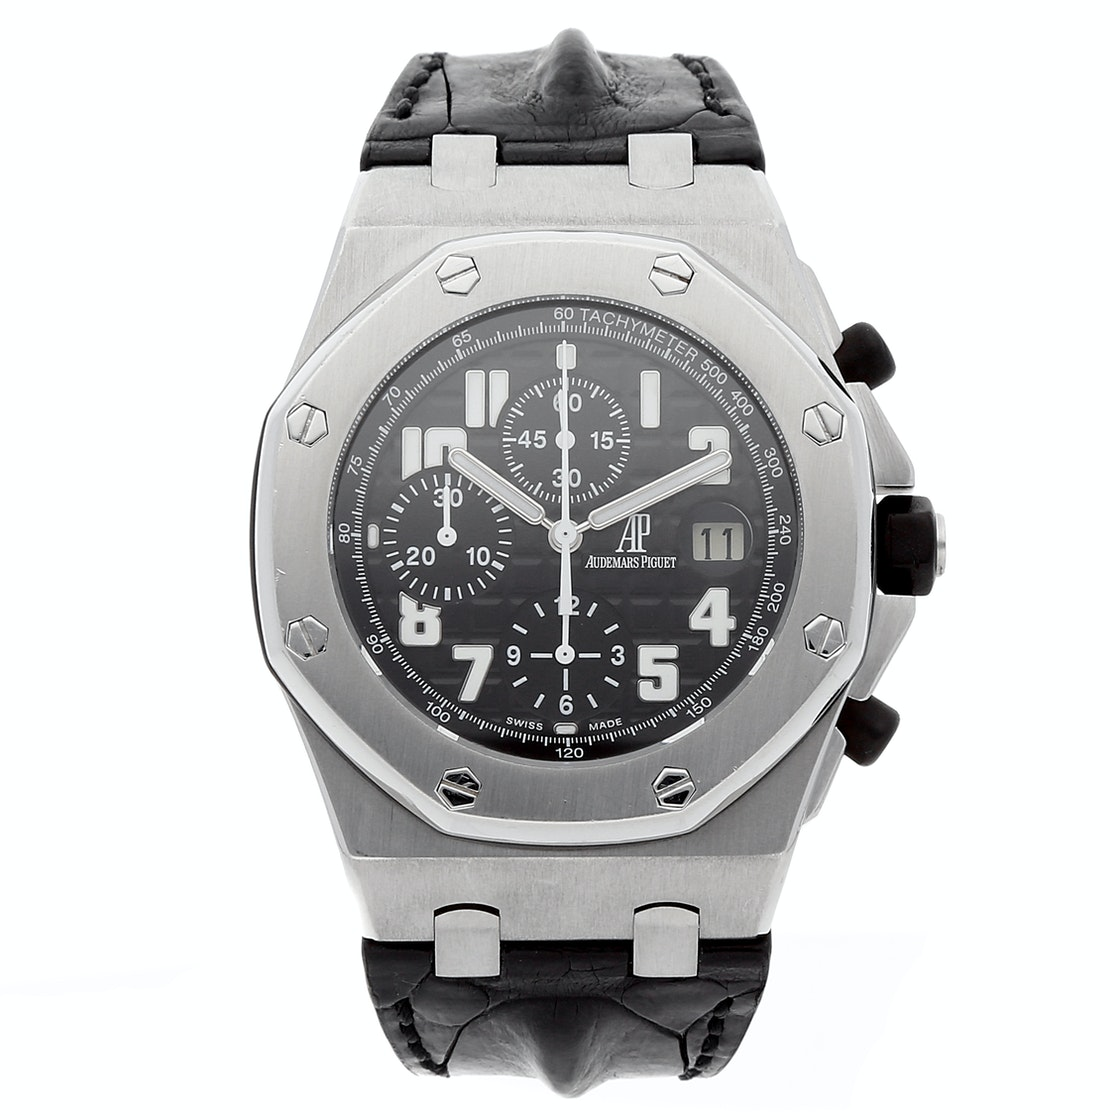 Audemars Piguet Royal Oak Offshore Chronograph 26020ST.OO.D001IN.01.A